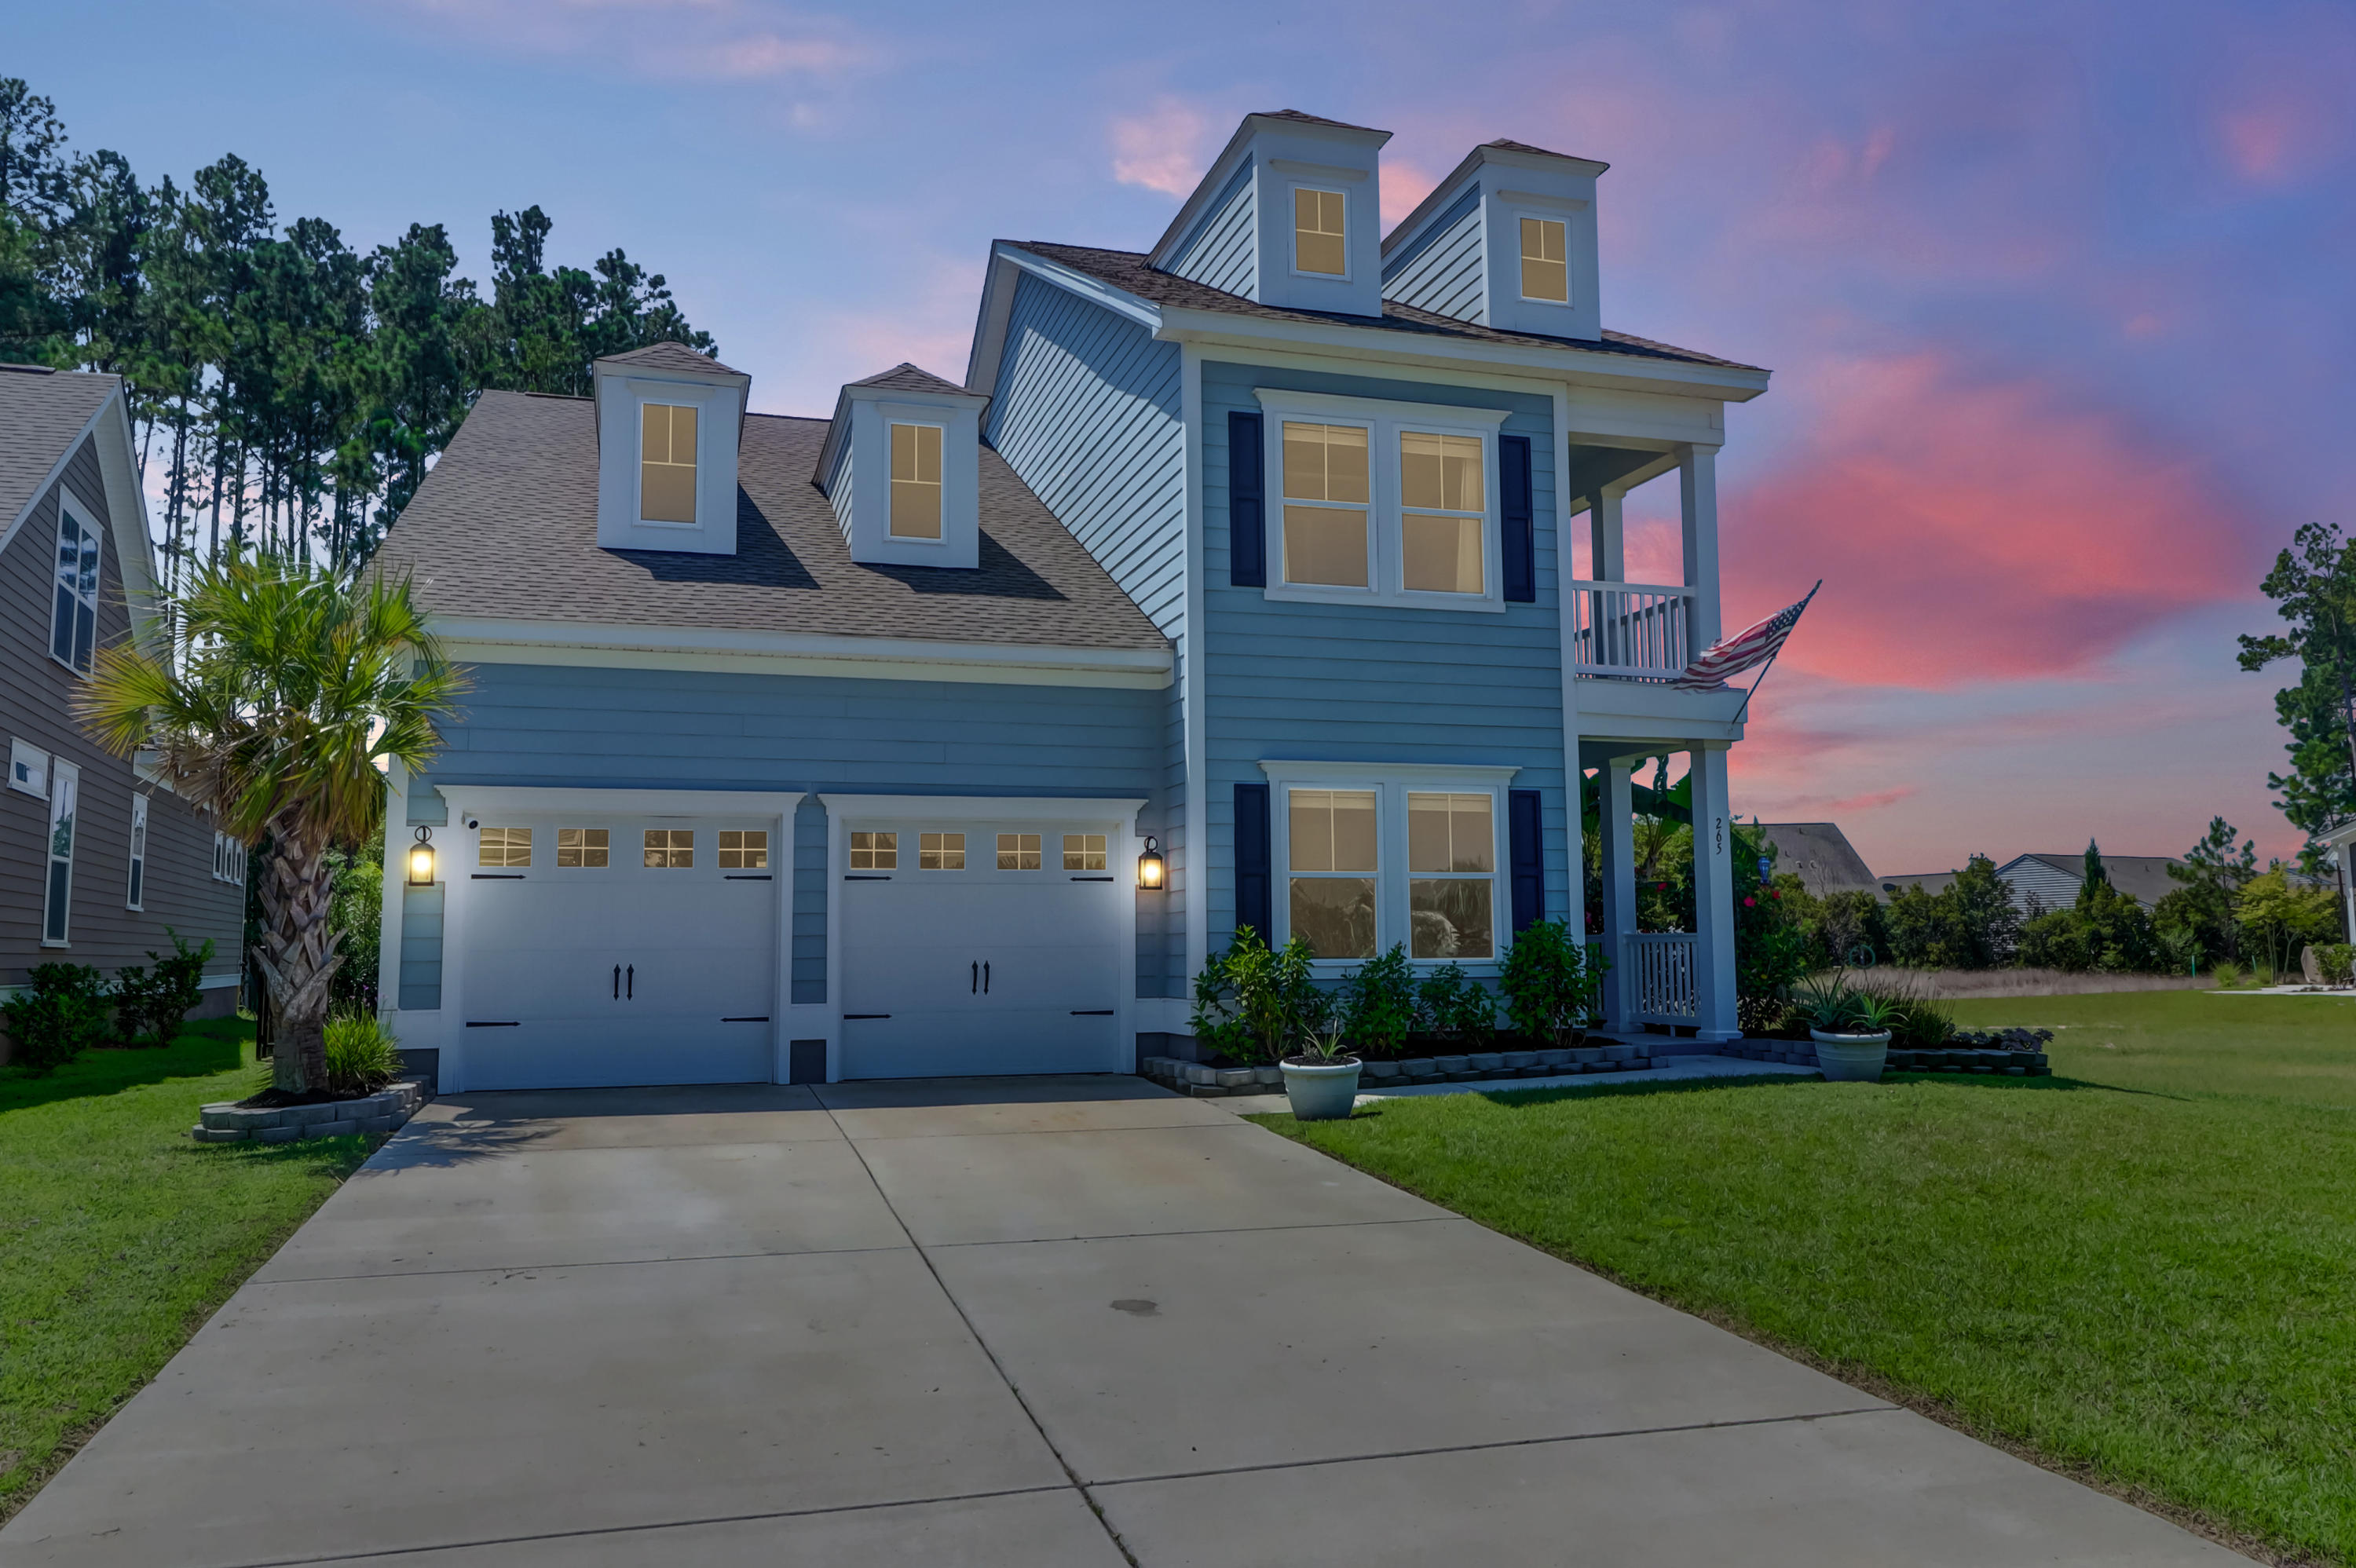 265 Calm Water Way Summerville, SC 29486